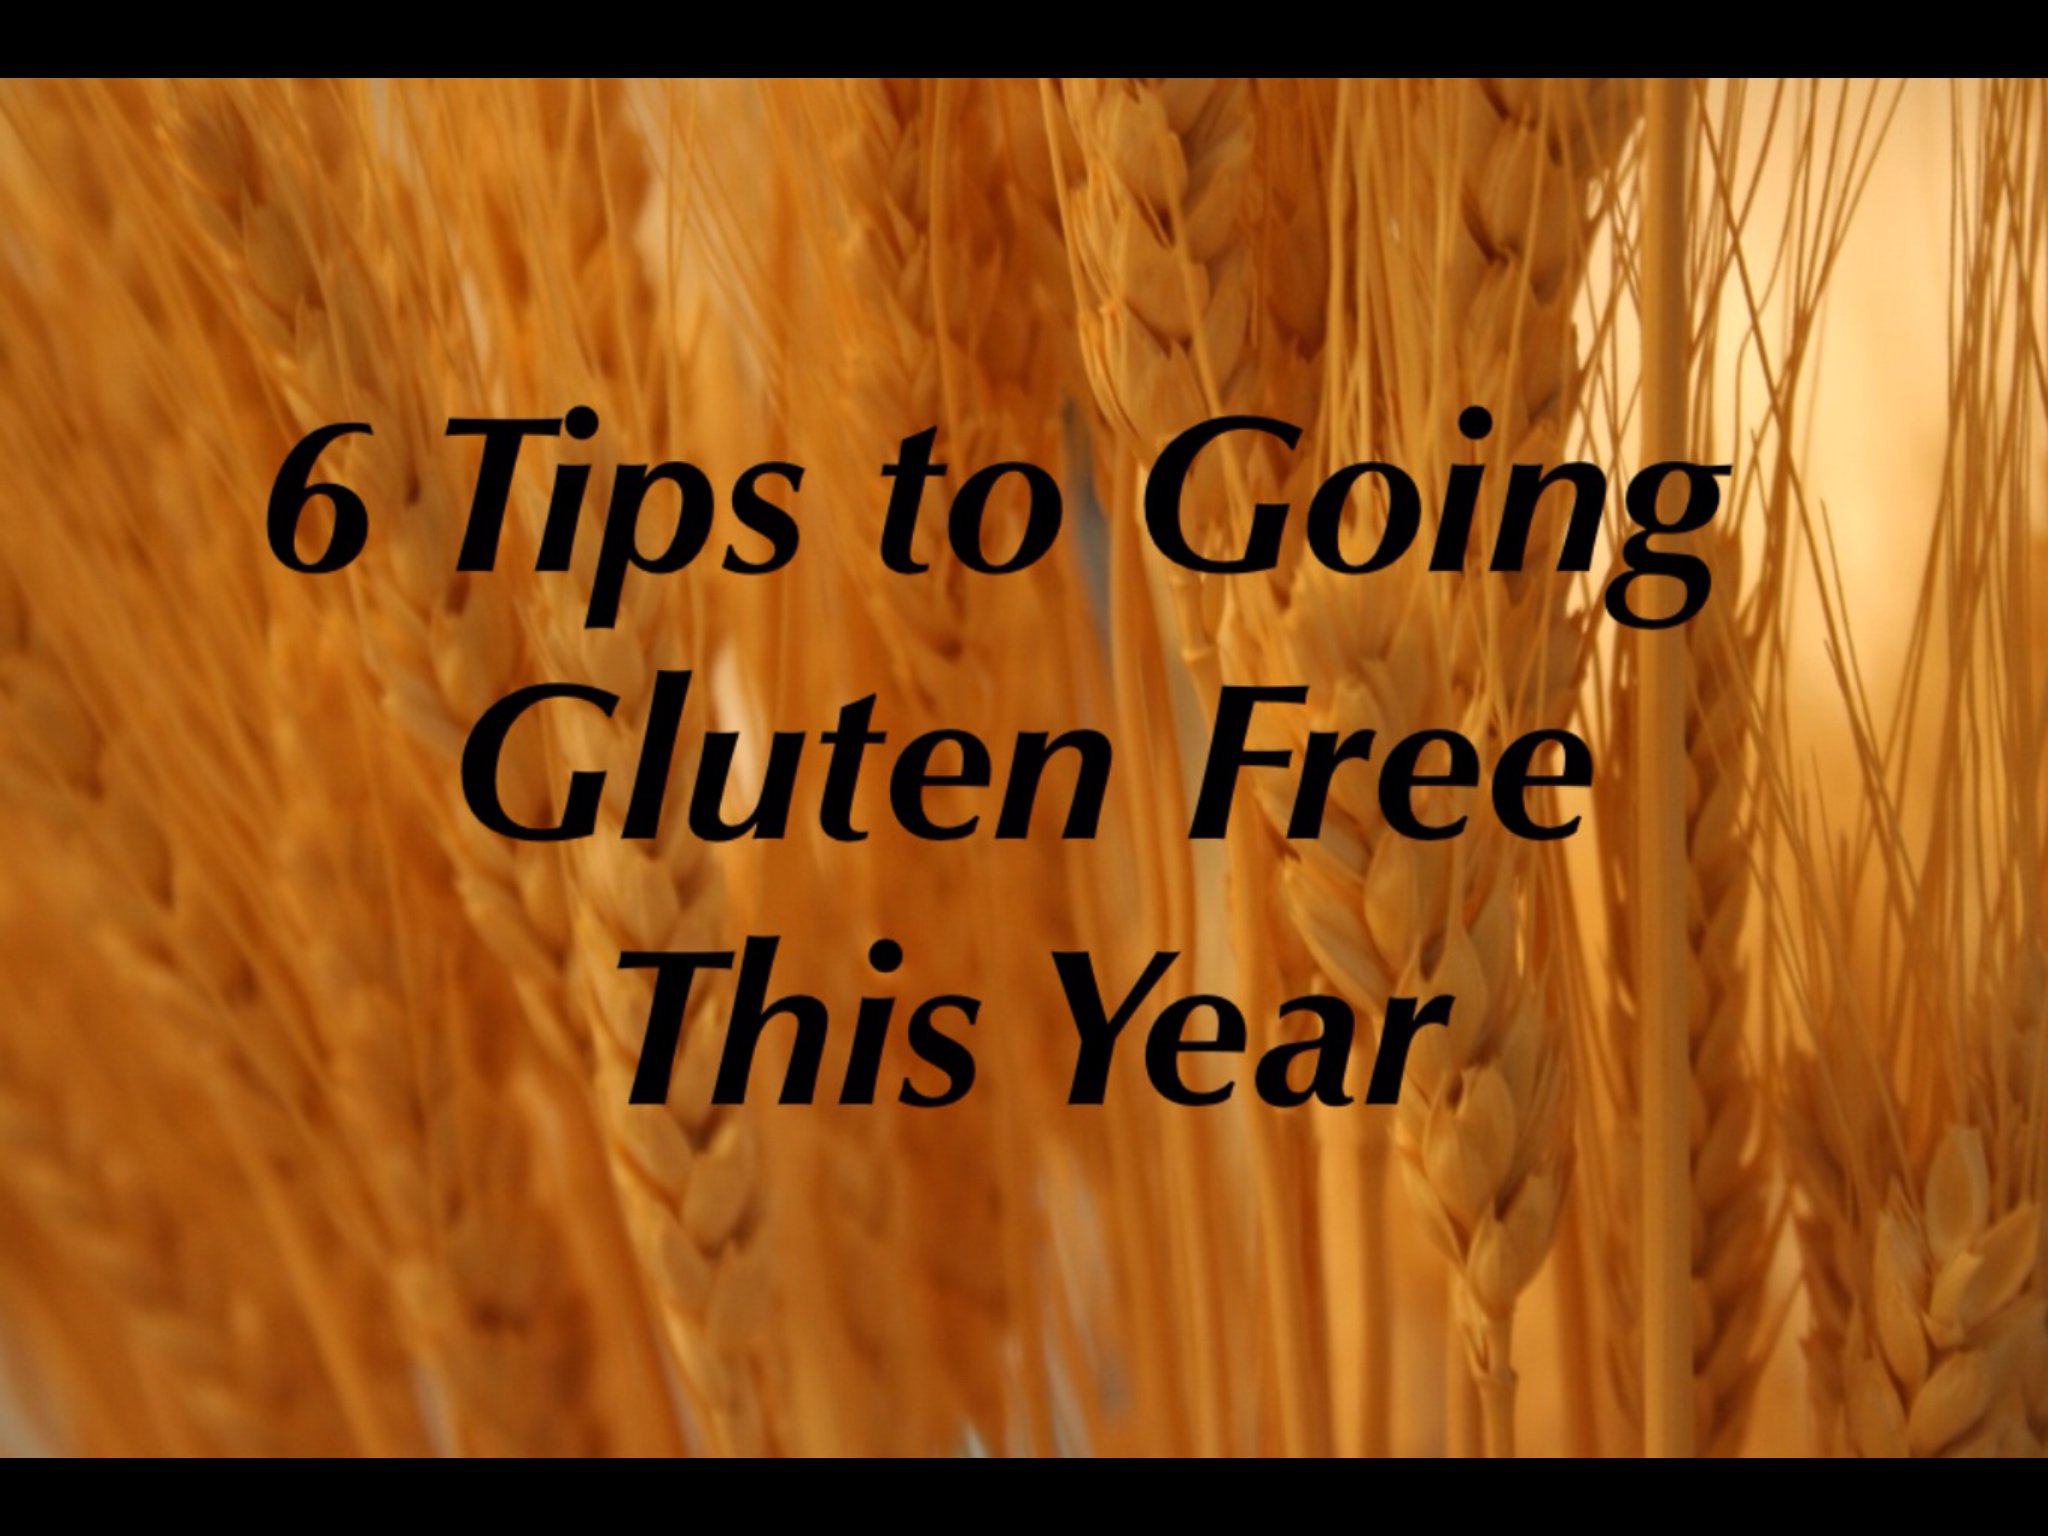 6 Tips to Going Gluten Free This Year